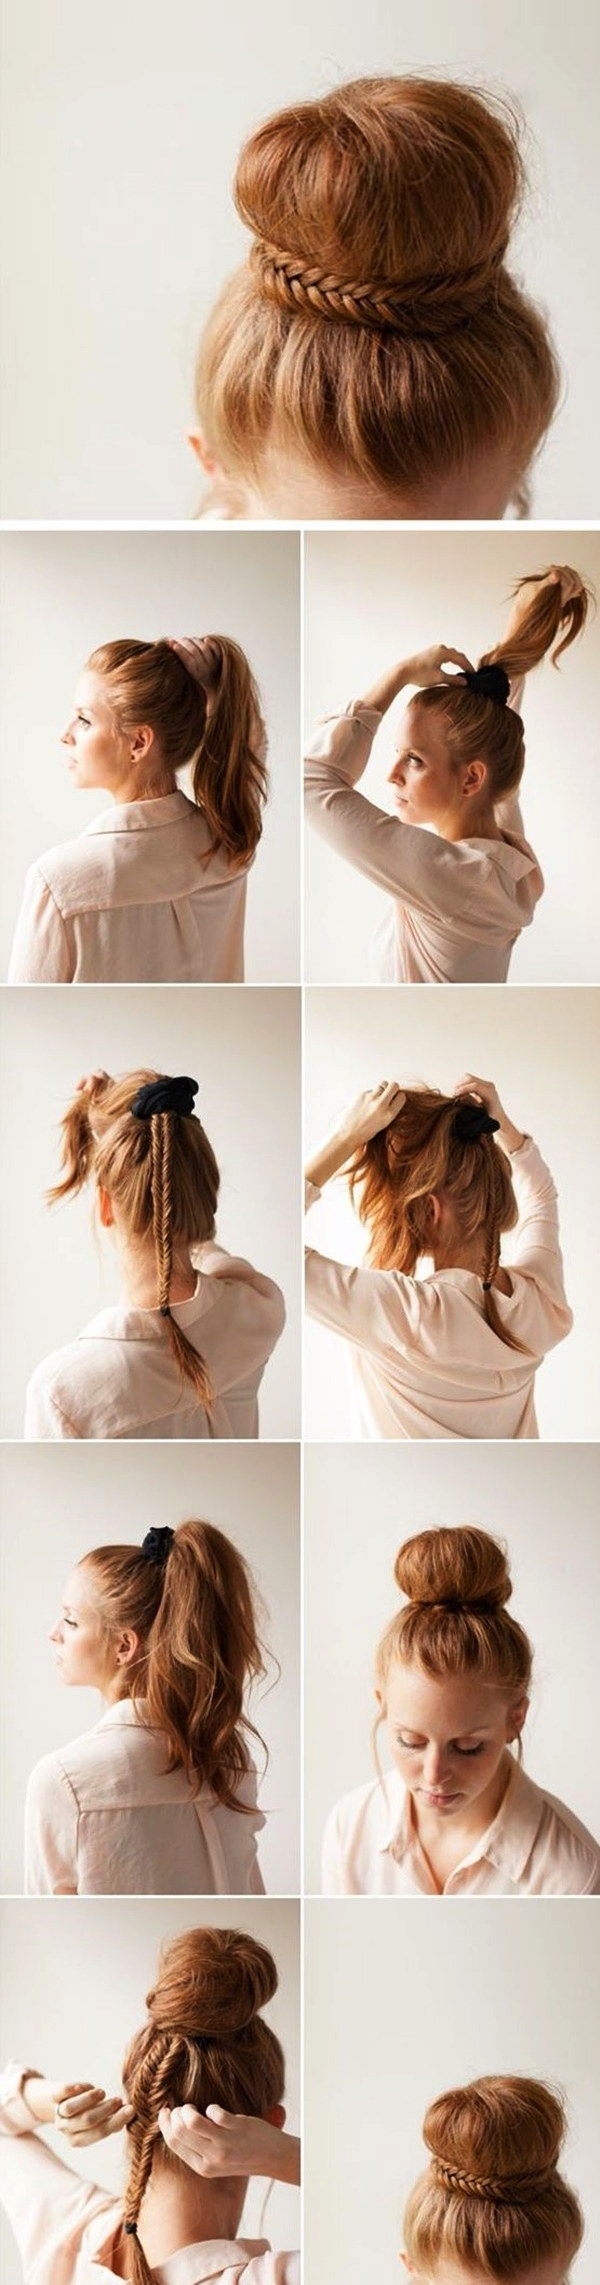 Easy Step By Step Hairstyles for Long Hair2